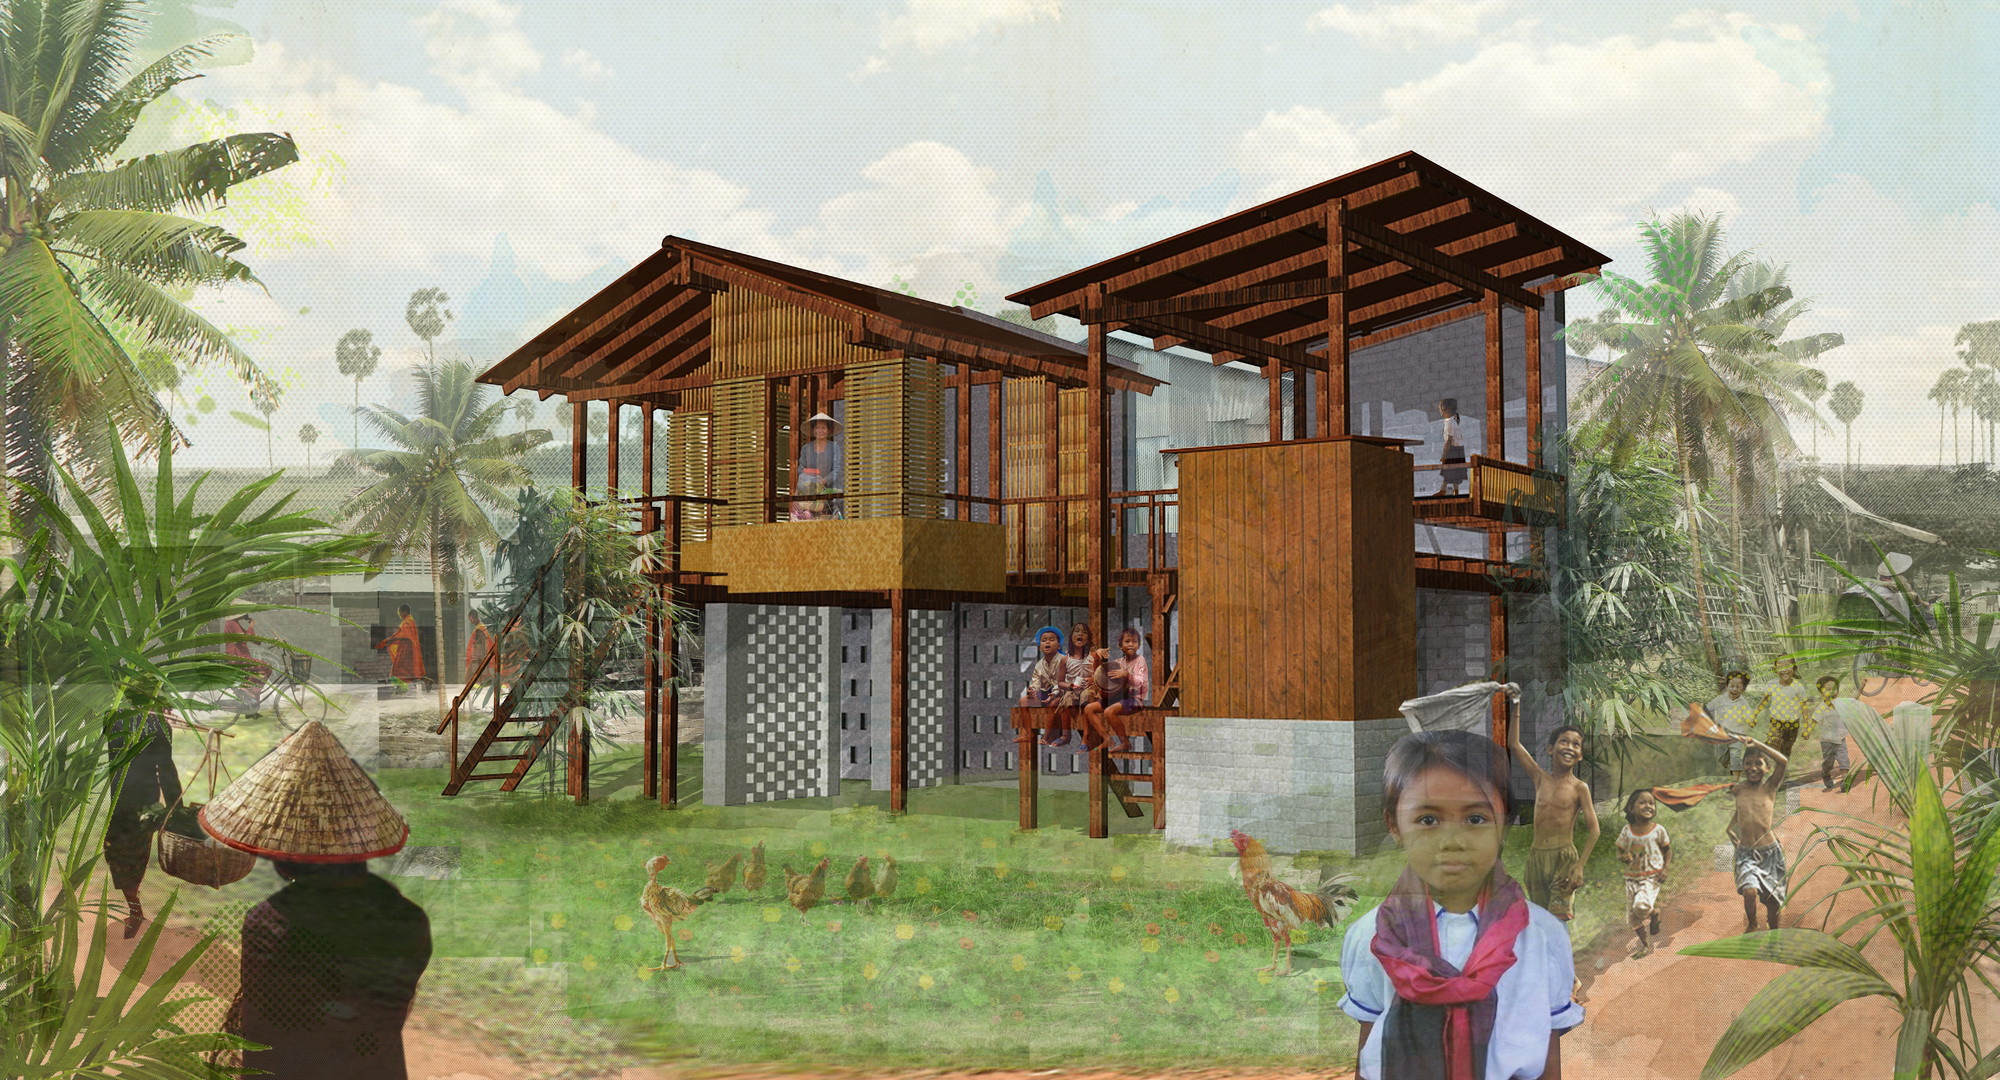 Building Trust International Constructs Sustainable Housing in Cambodia, Courtyard House render. Image Courtesy of Building Trust International